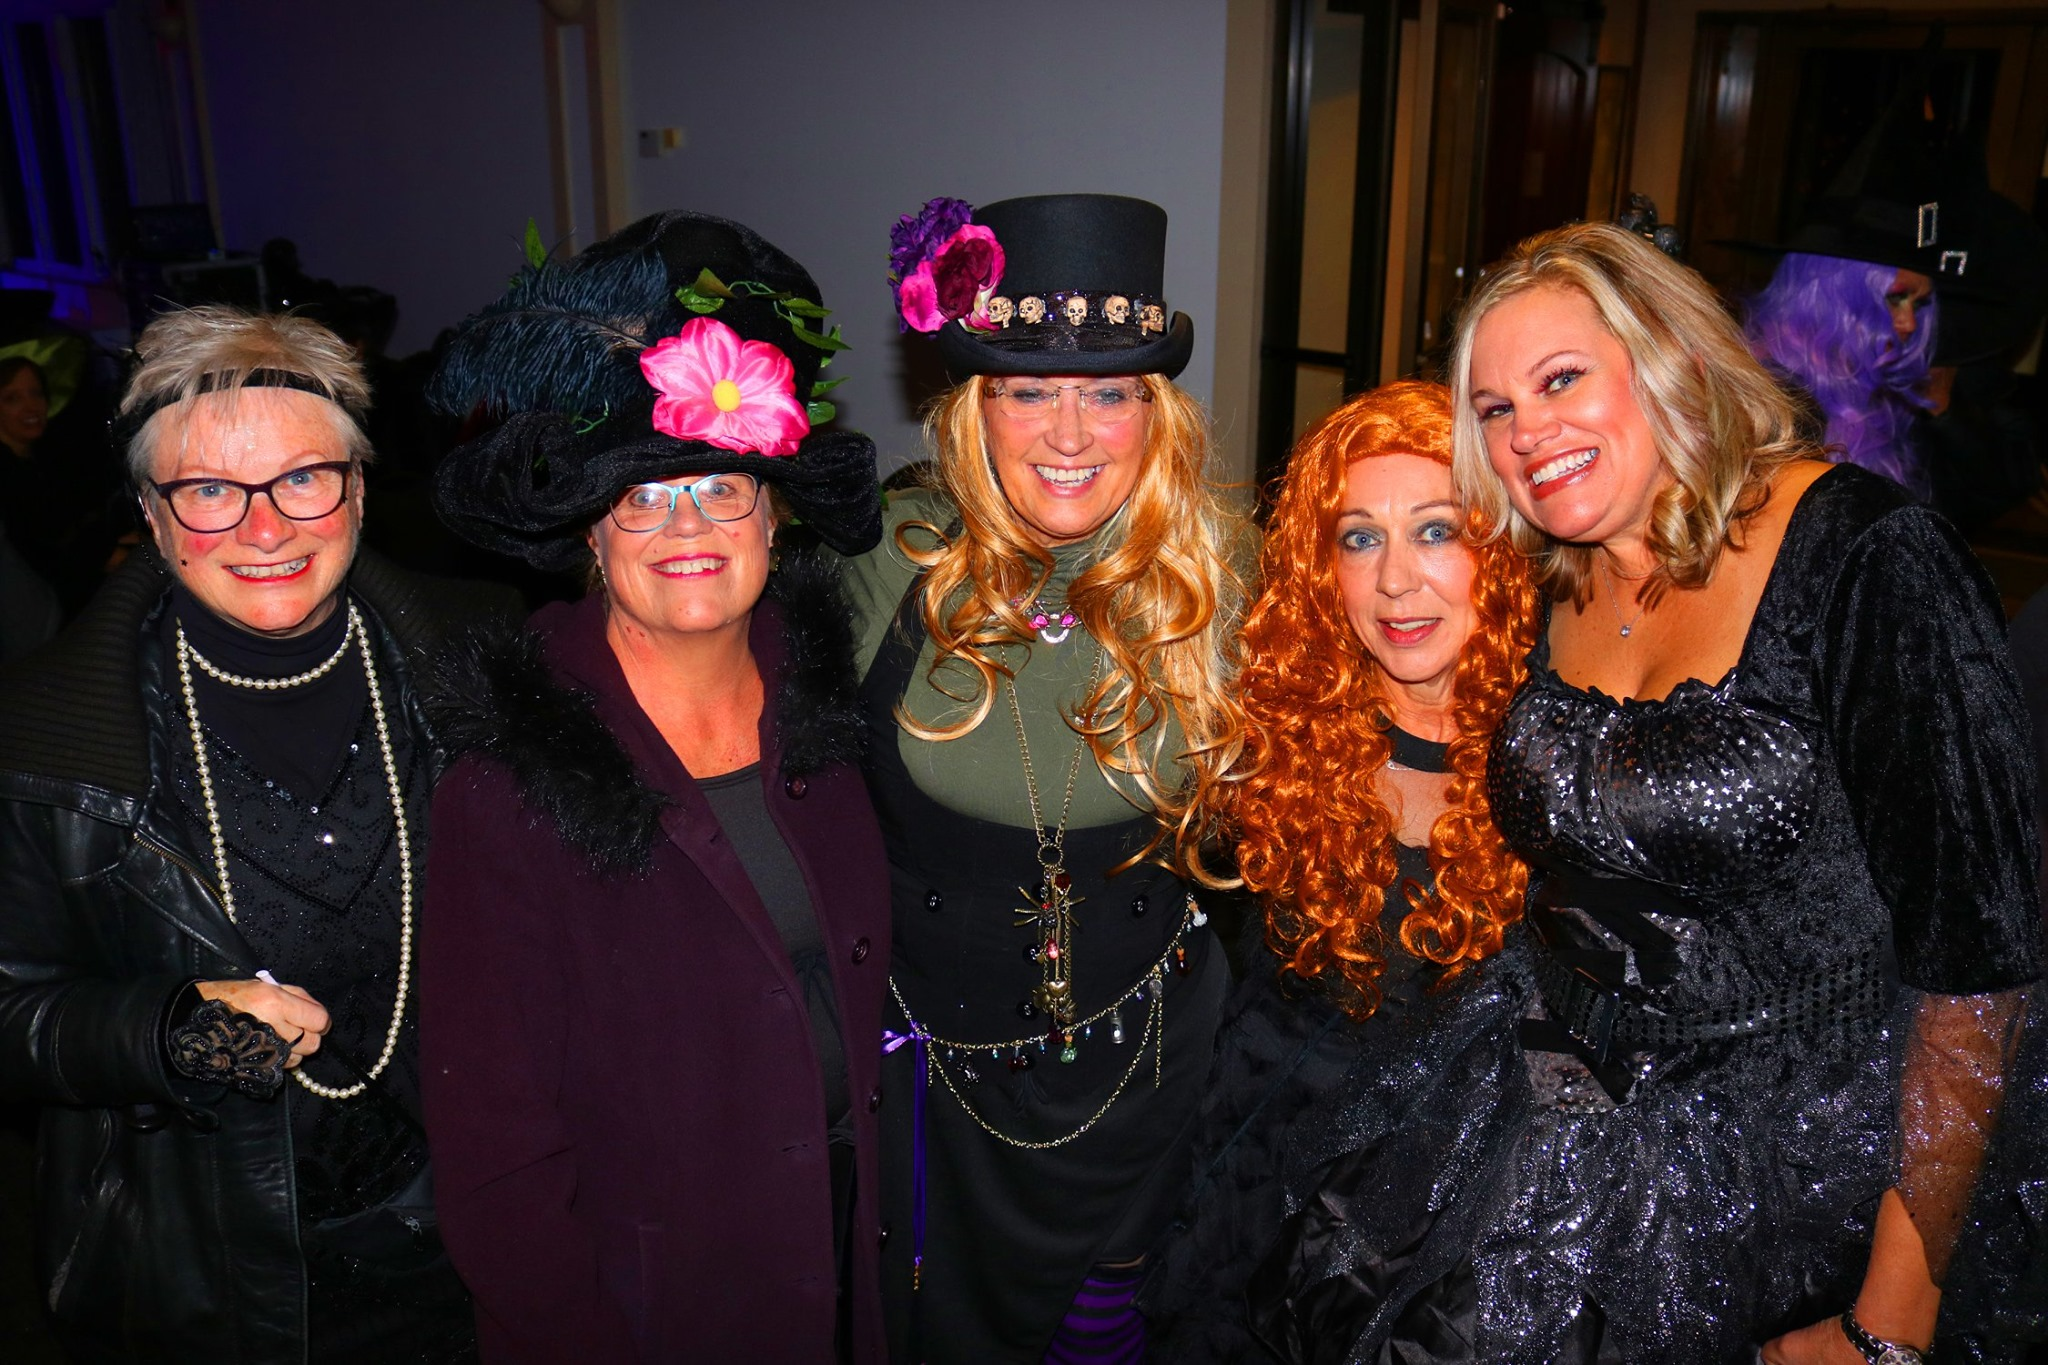 Group picture of witches dressed up